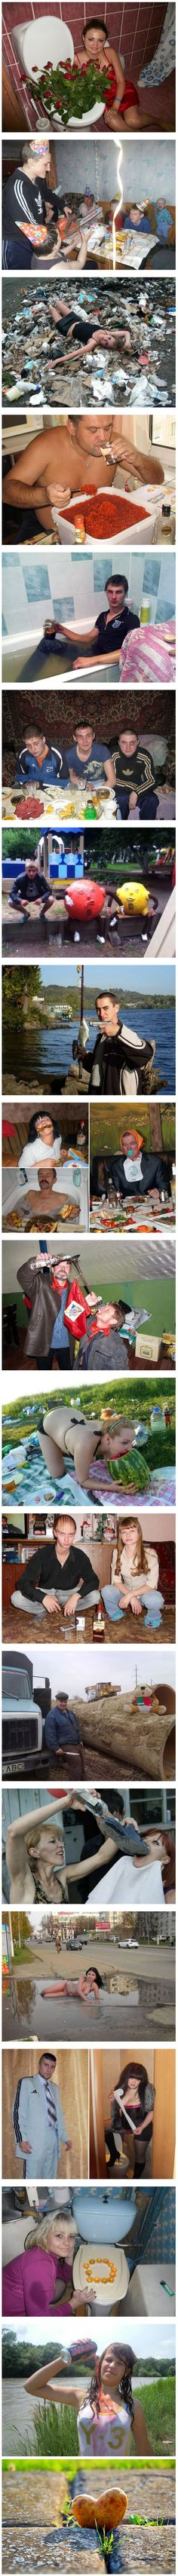 Ordinary Photos From Russian Social Networks